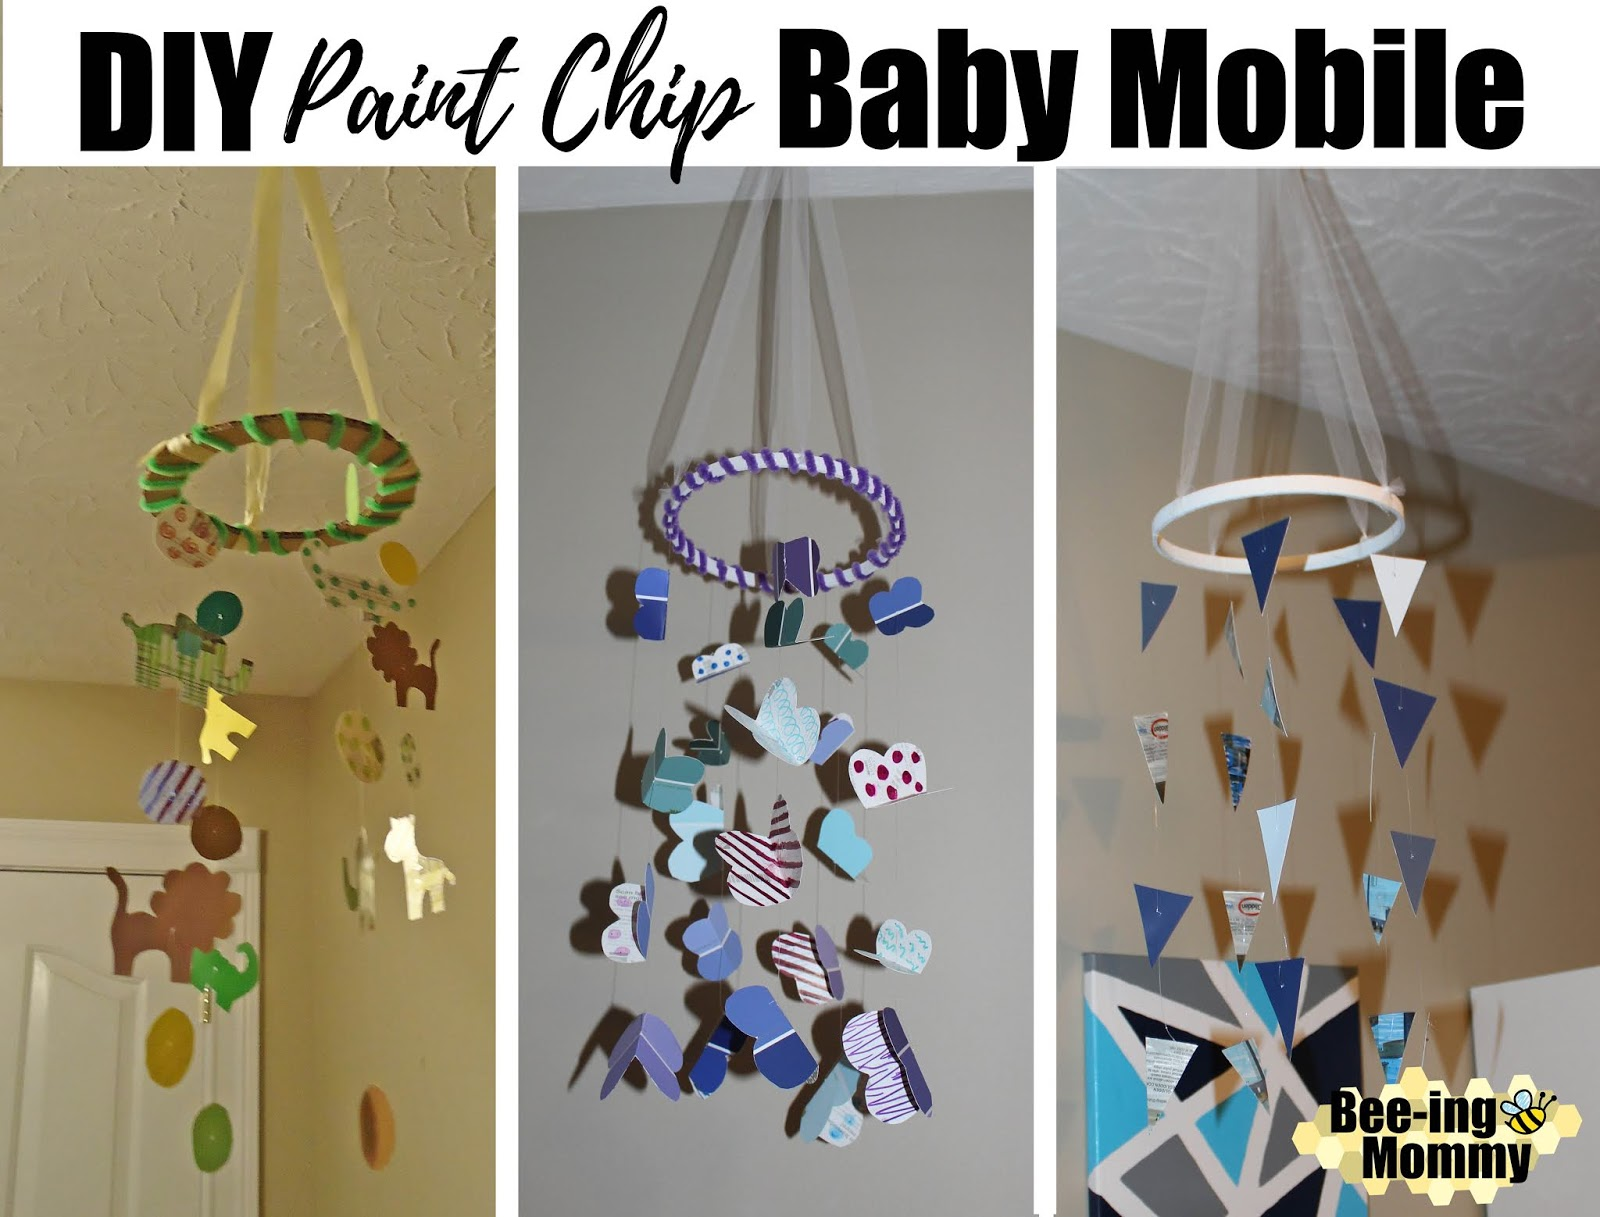 Paint Chip Baby Mobile Tutorial